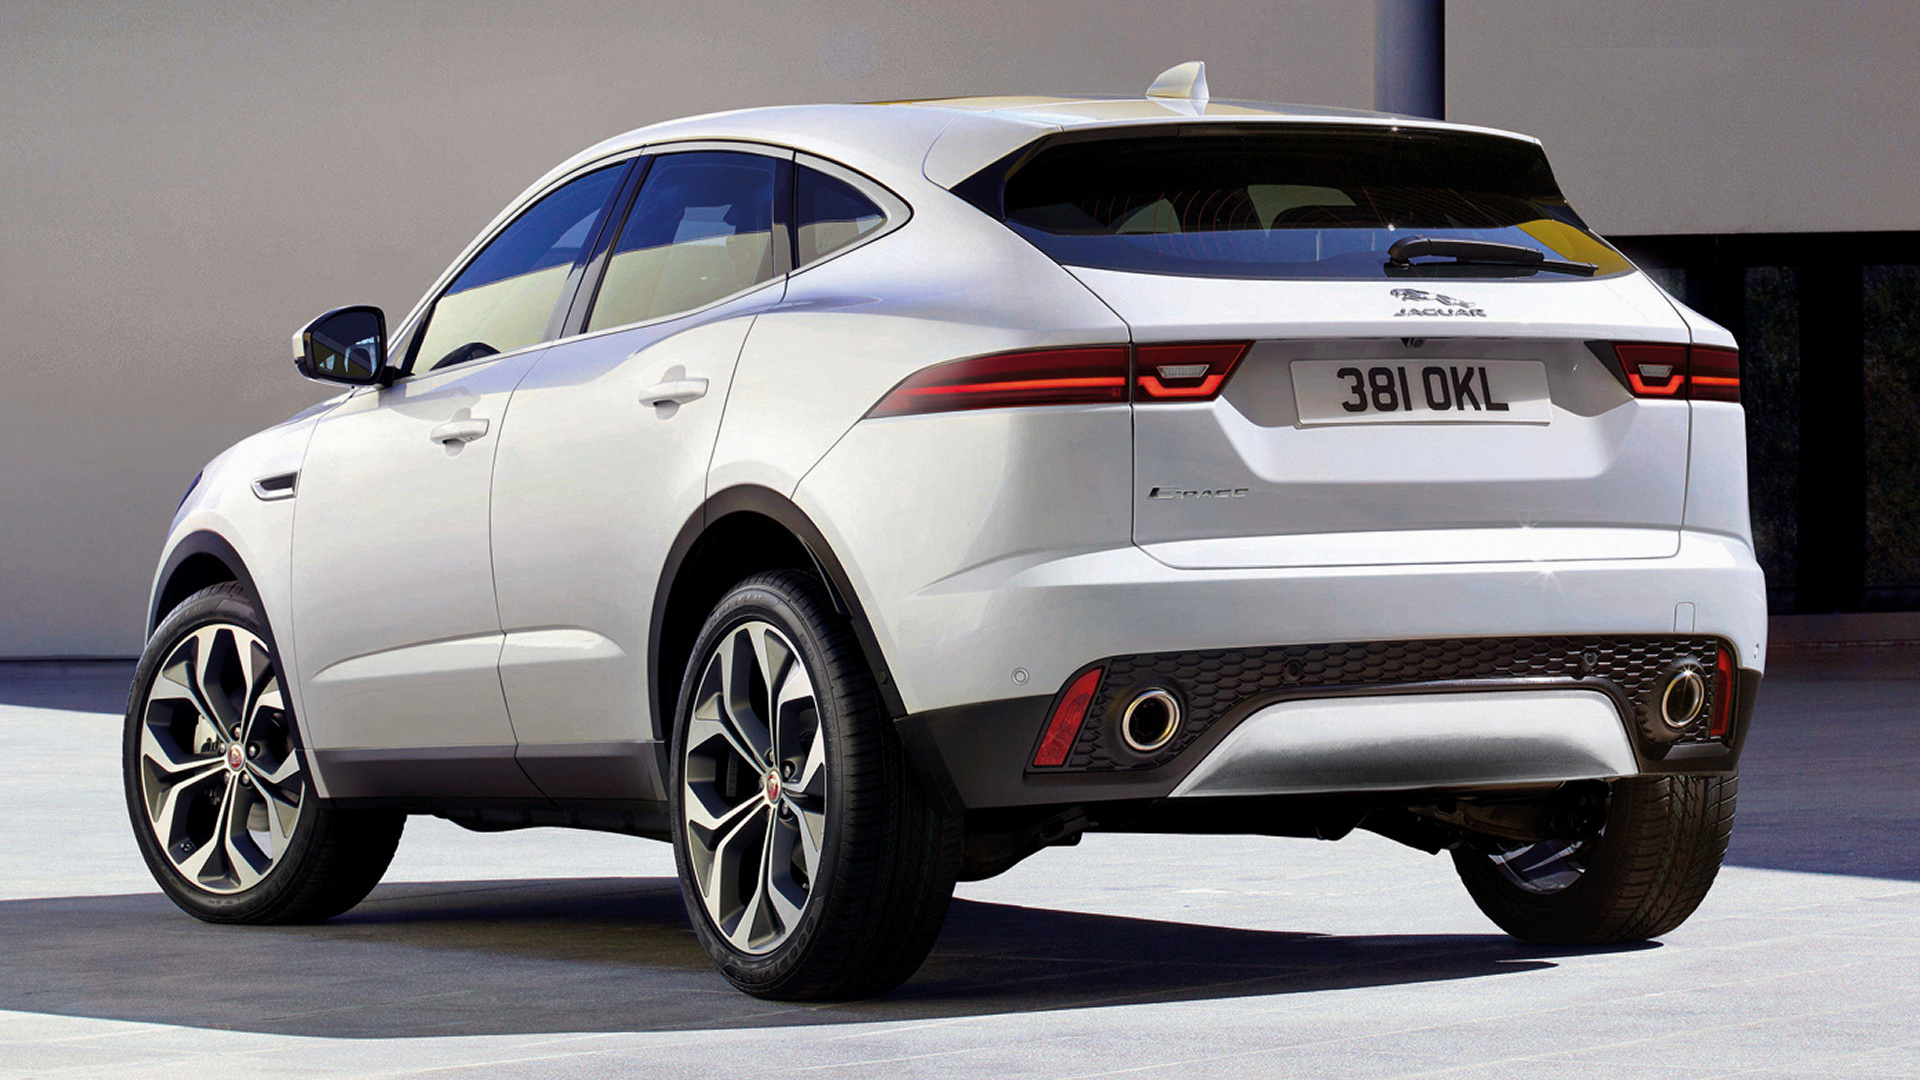 2017 jaguar e pace wallpapers and hd images car pixel. Black Bedroom Furniture Sets. Home Design Ideas